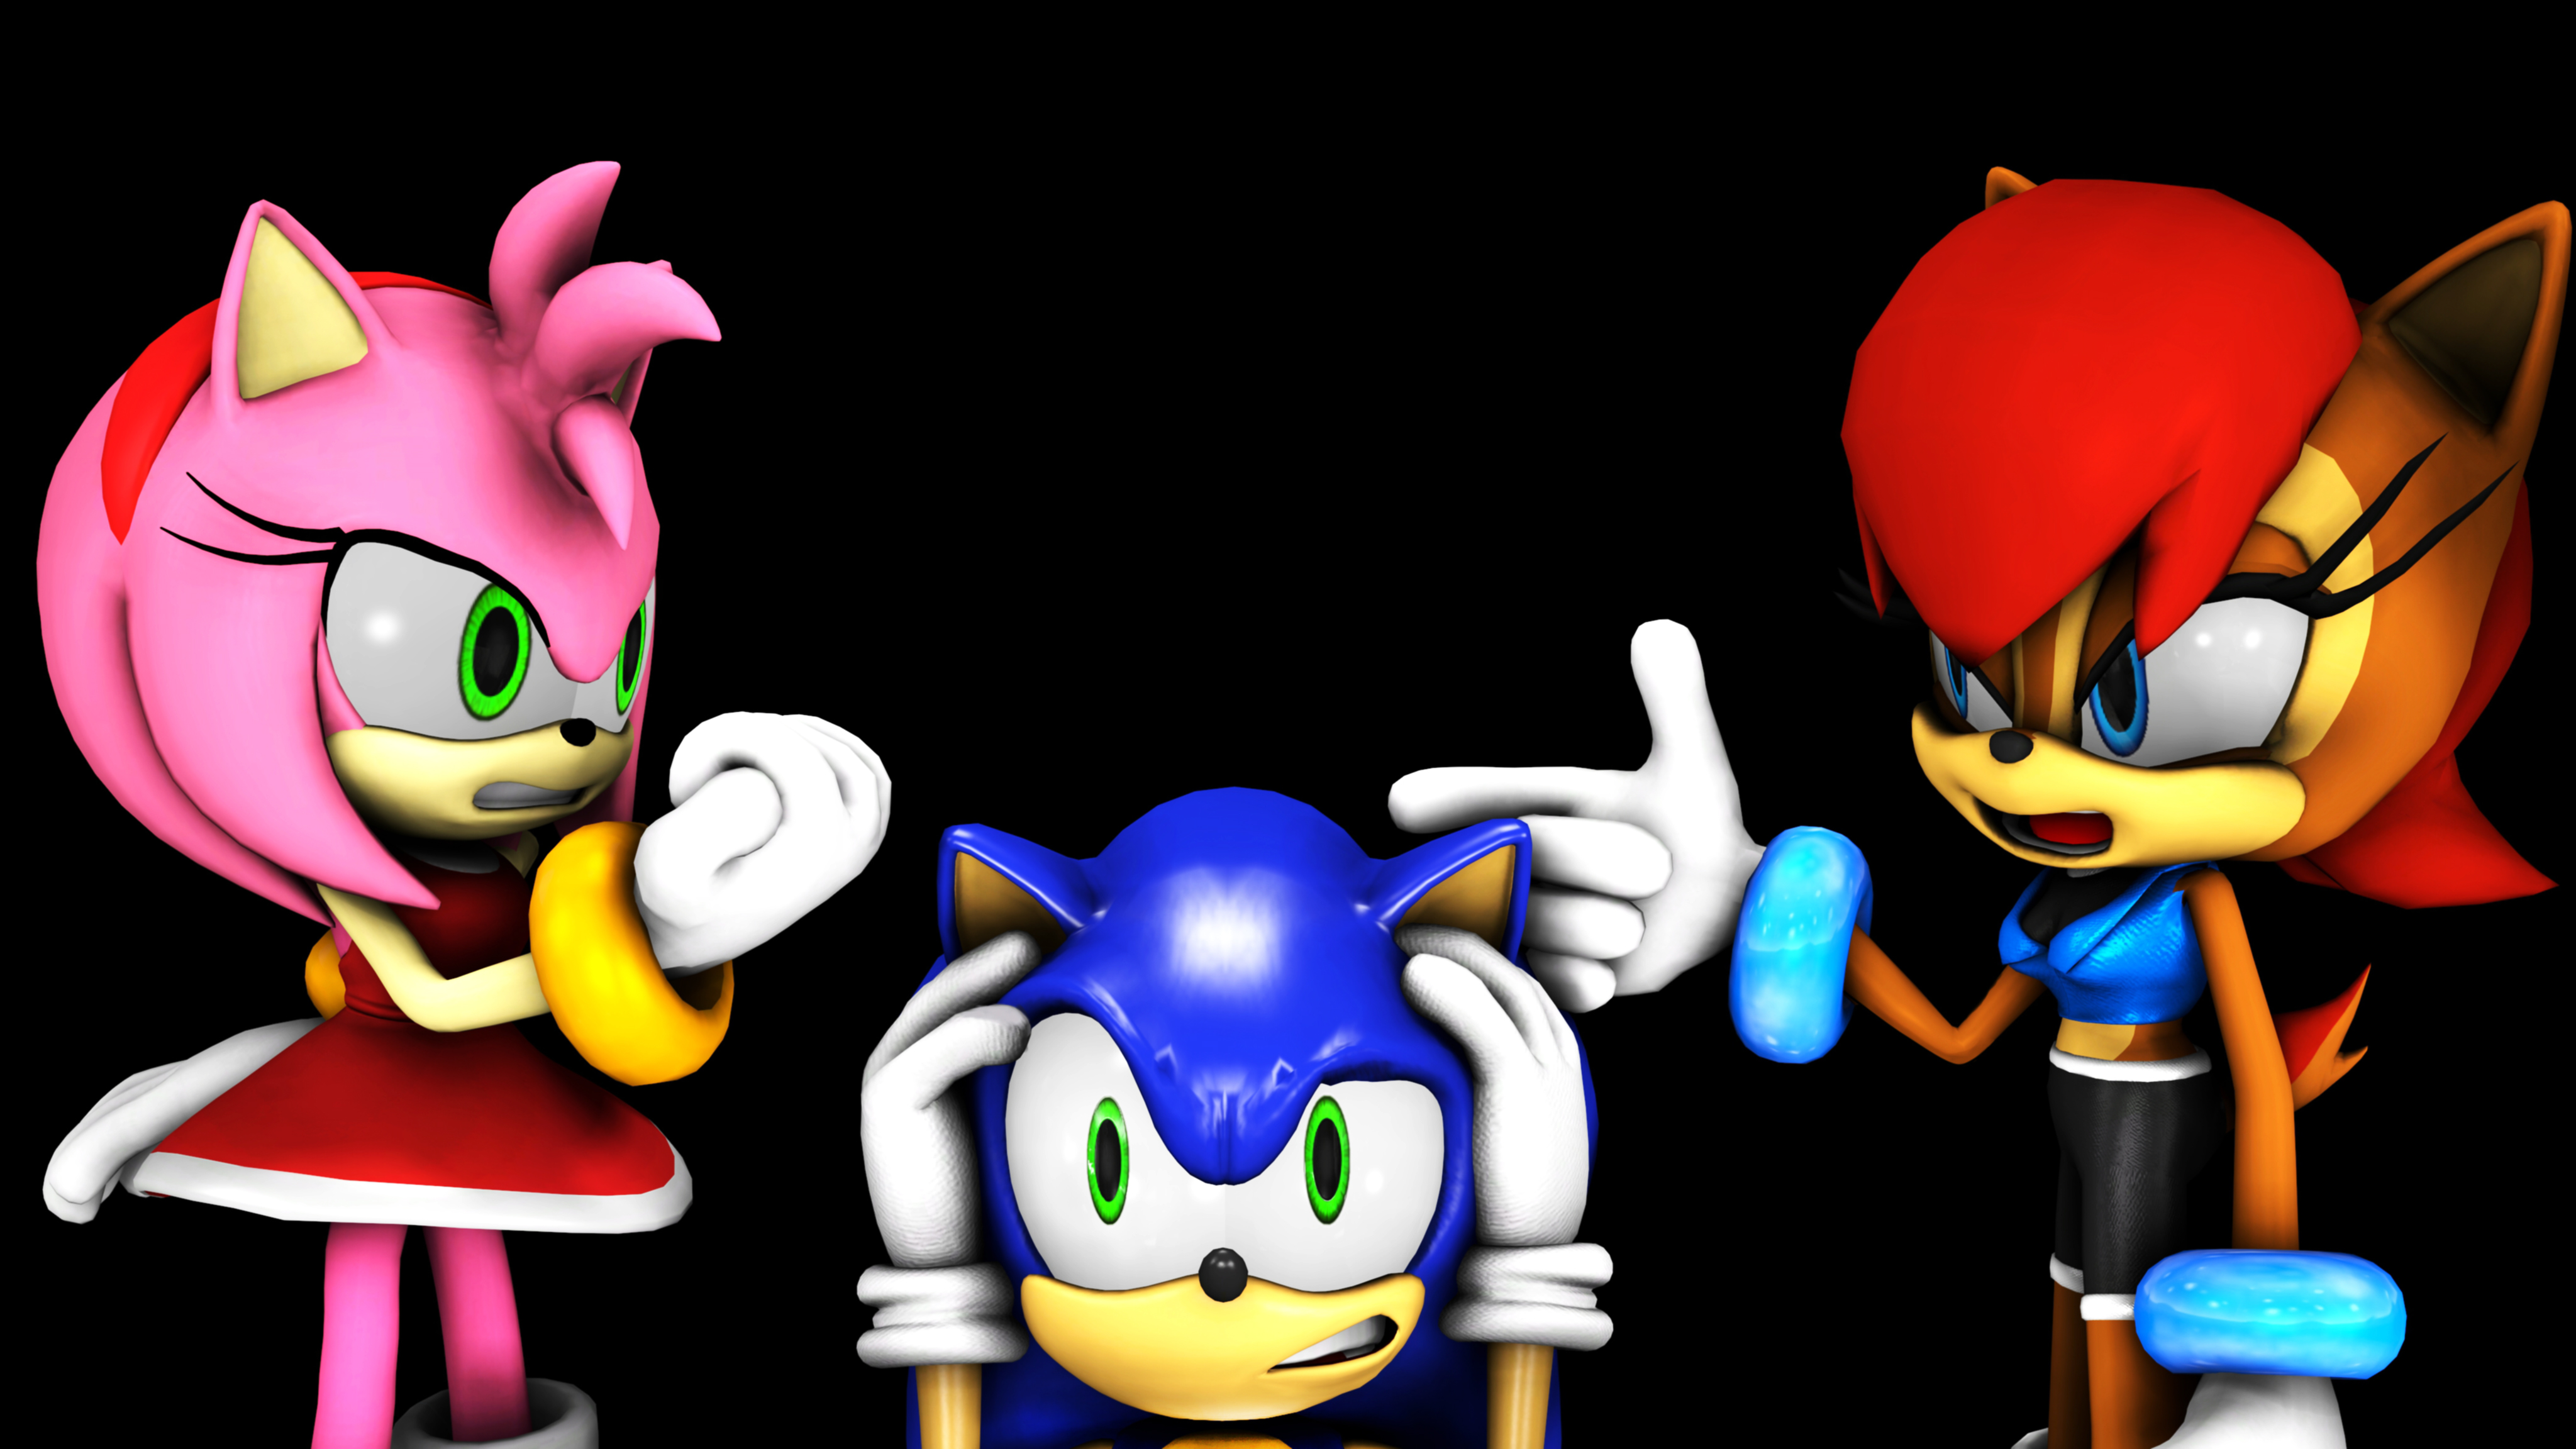 The Amy and Sallys fusion by RachelGilber on DeviantArt